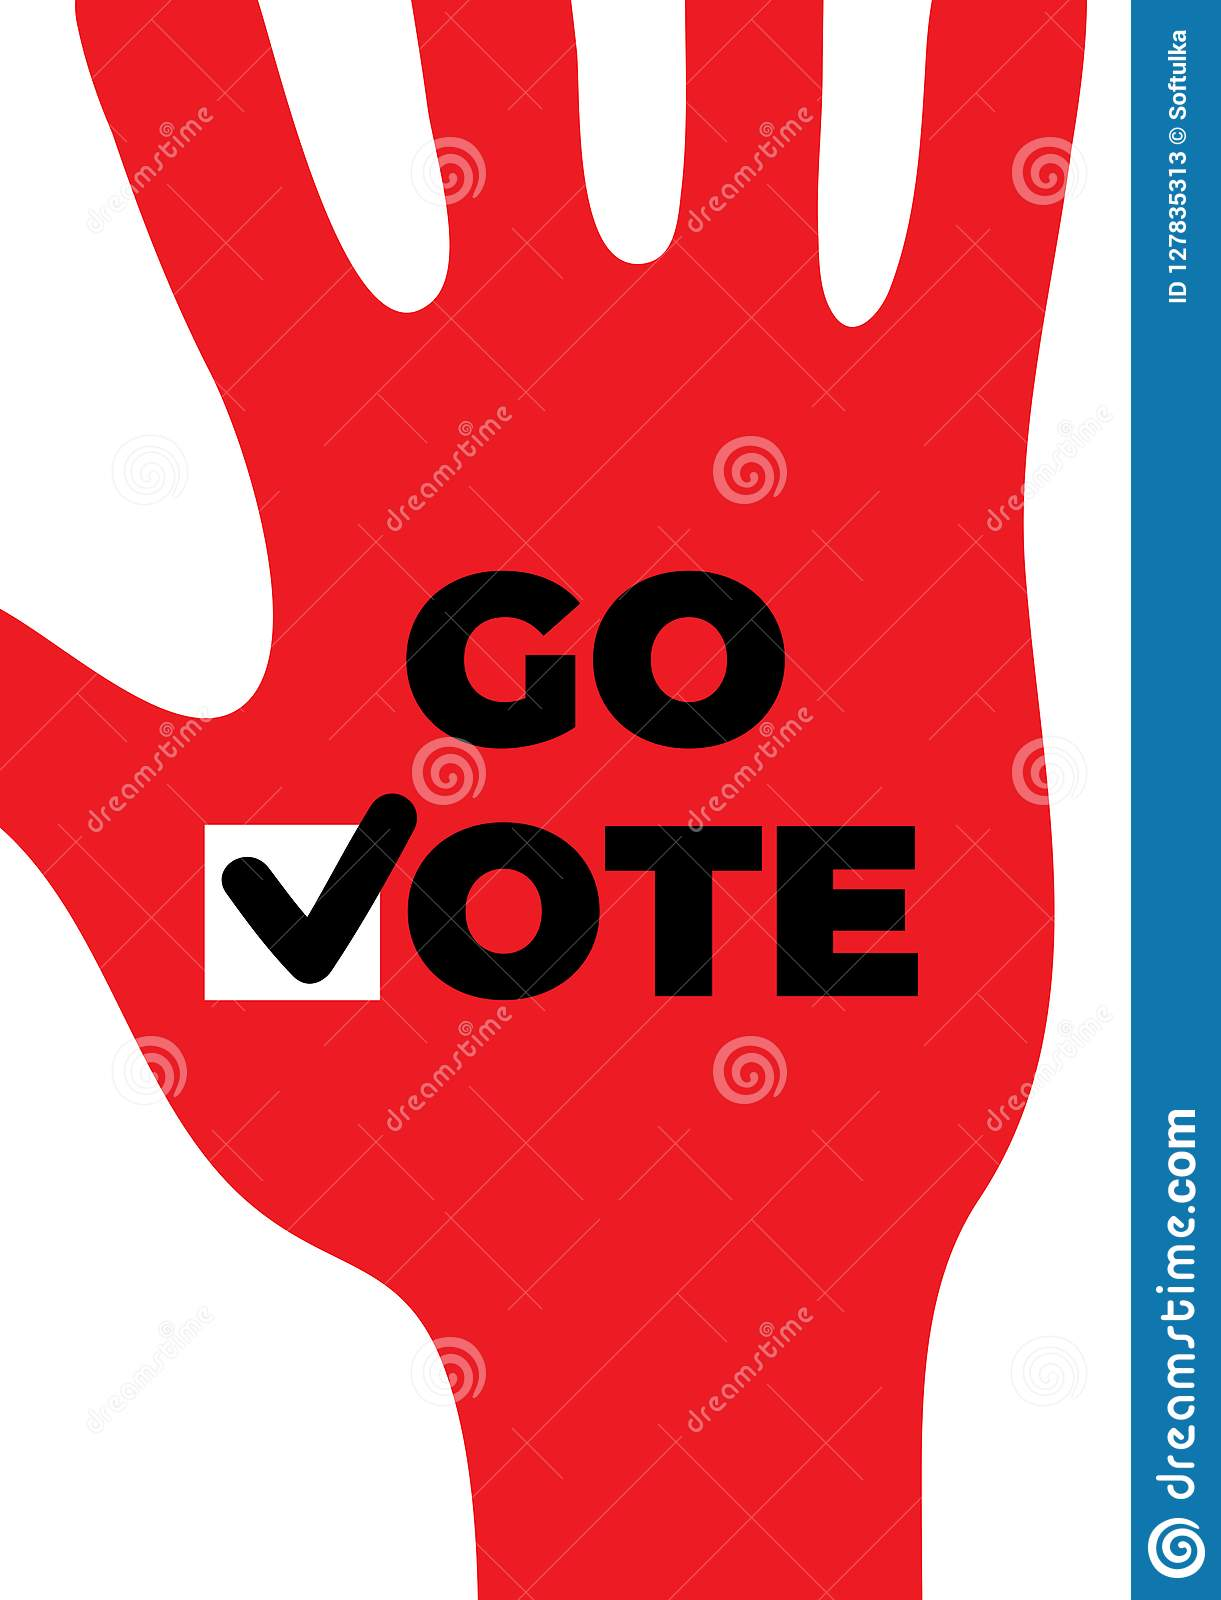 Go Vote Social Motivational Poster Up Hand Stock Vector